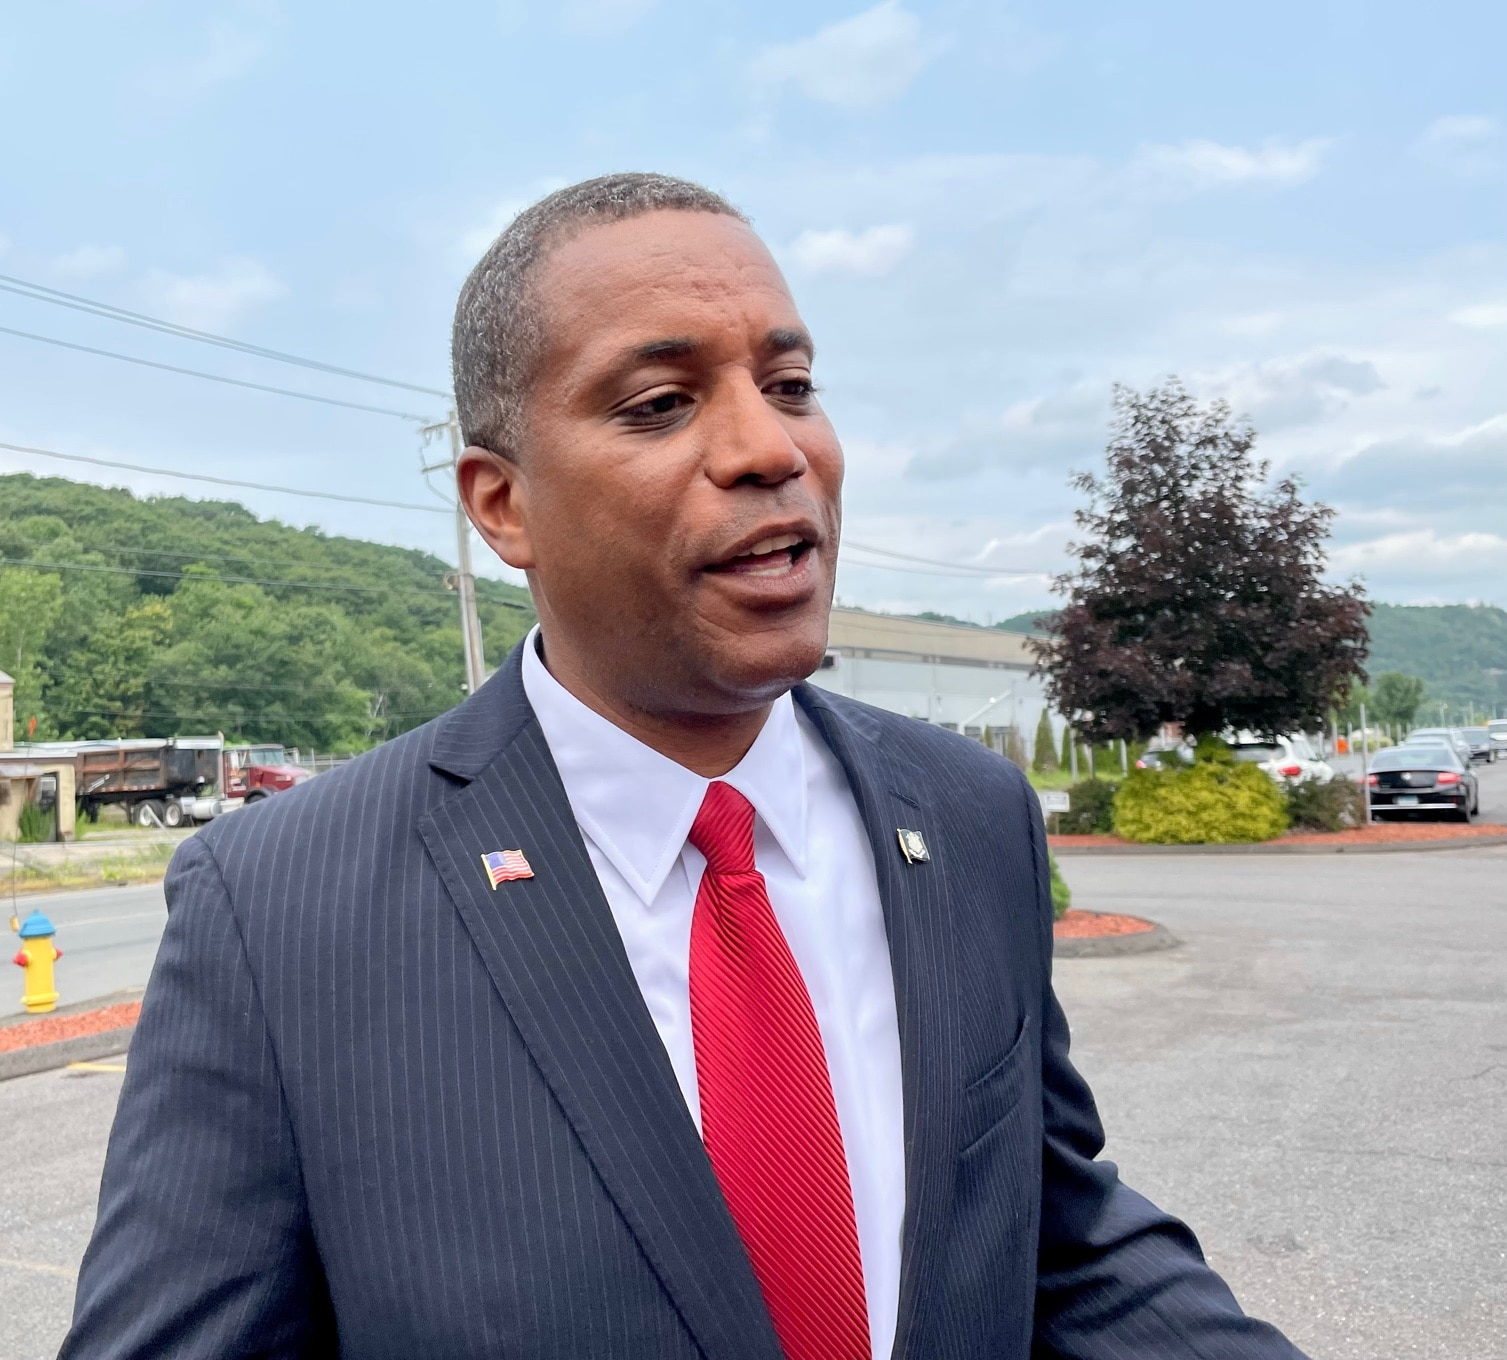 GOP hopes for long-awaited congressional contender in George Logan